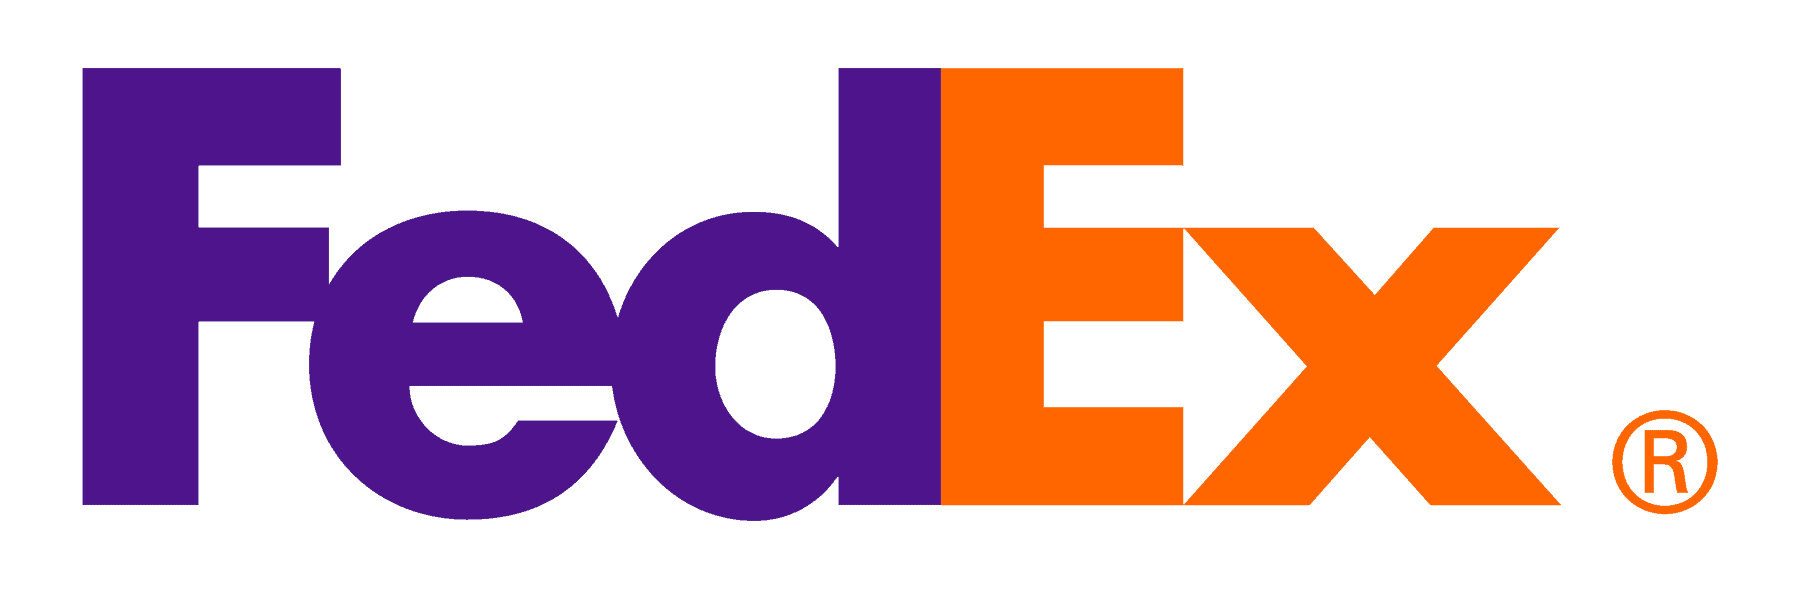 FedEx logo delivery